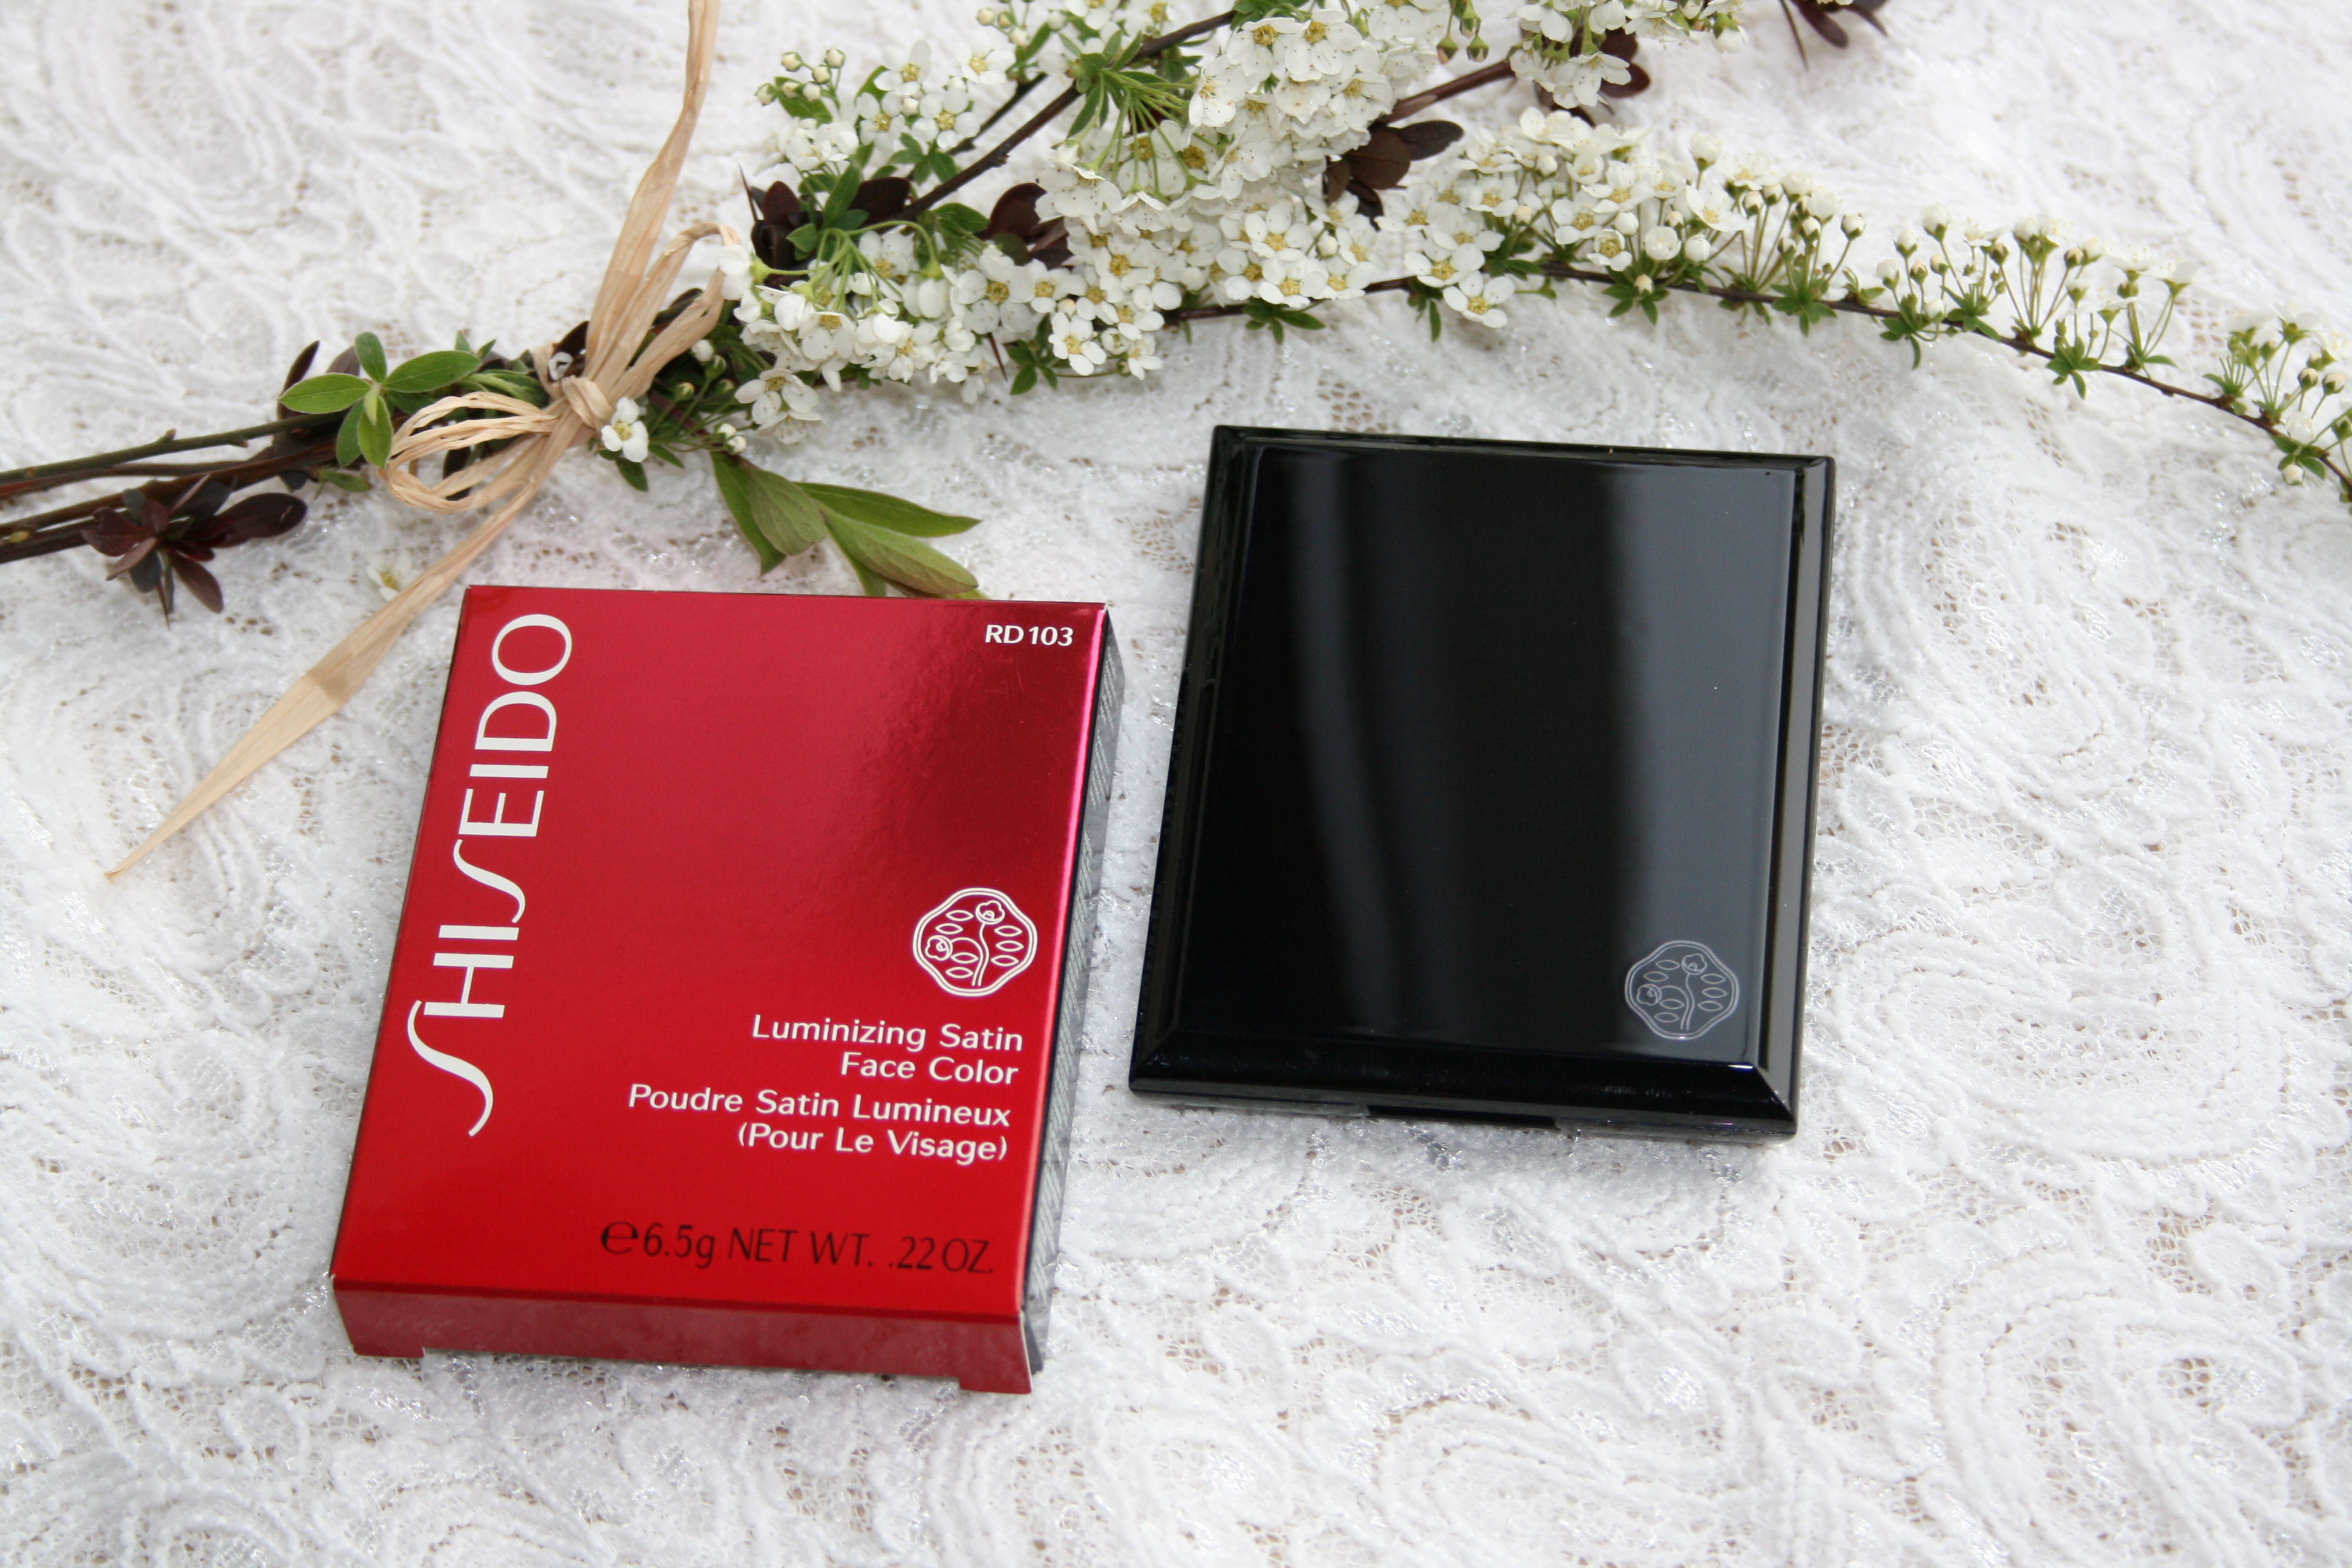 Shiseido Luminizing Satin Face Color RD 103